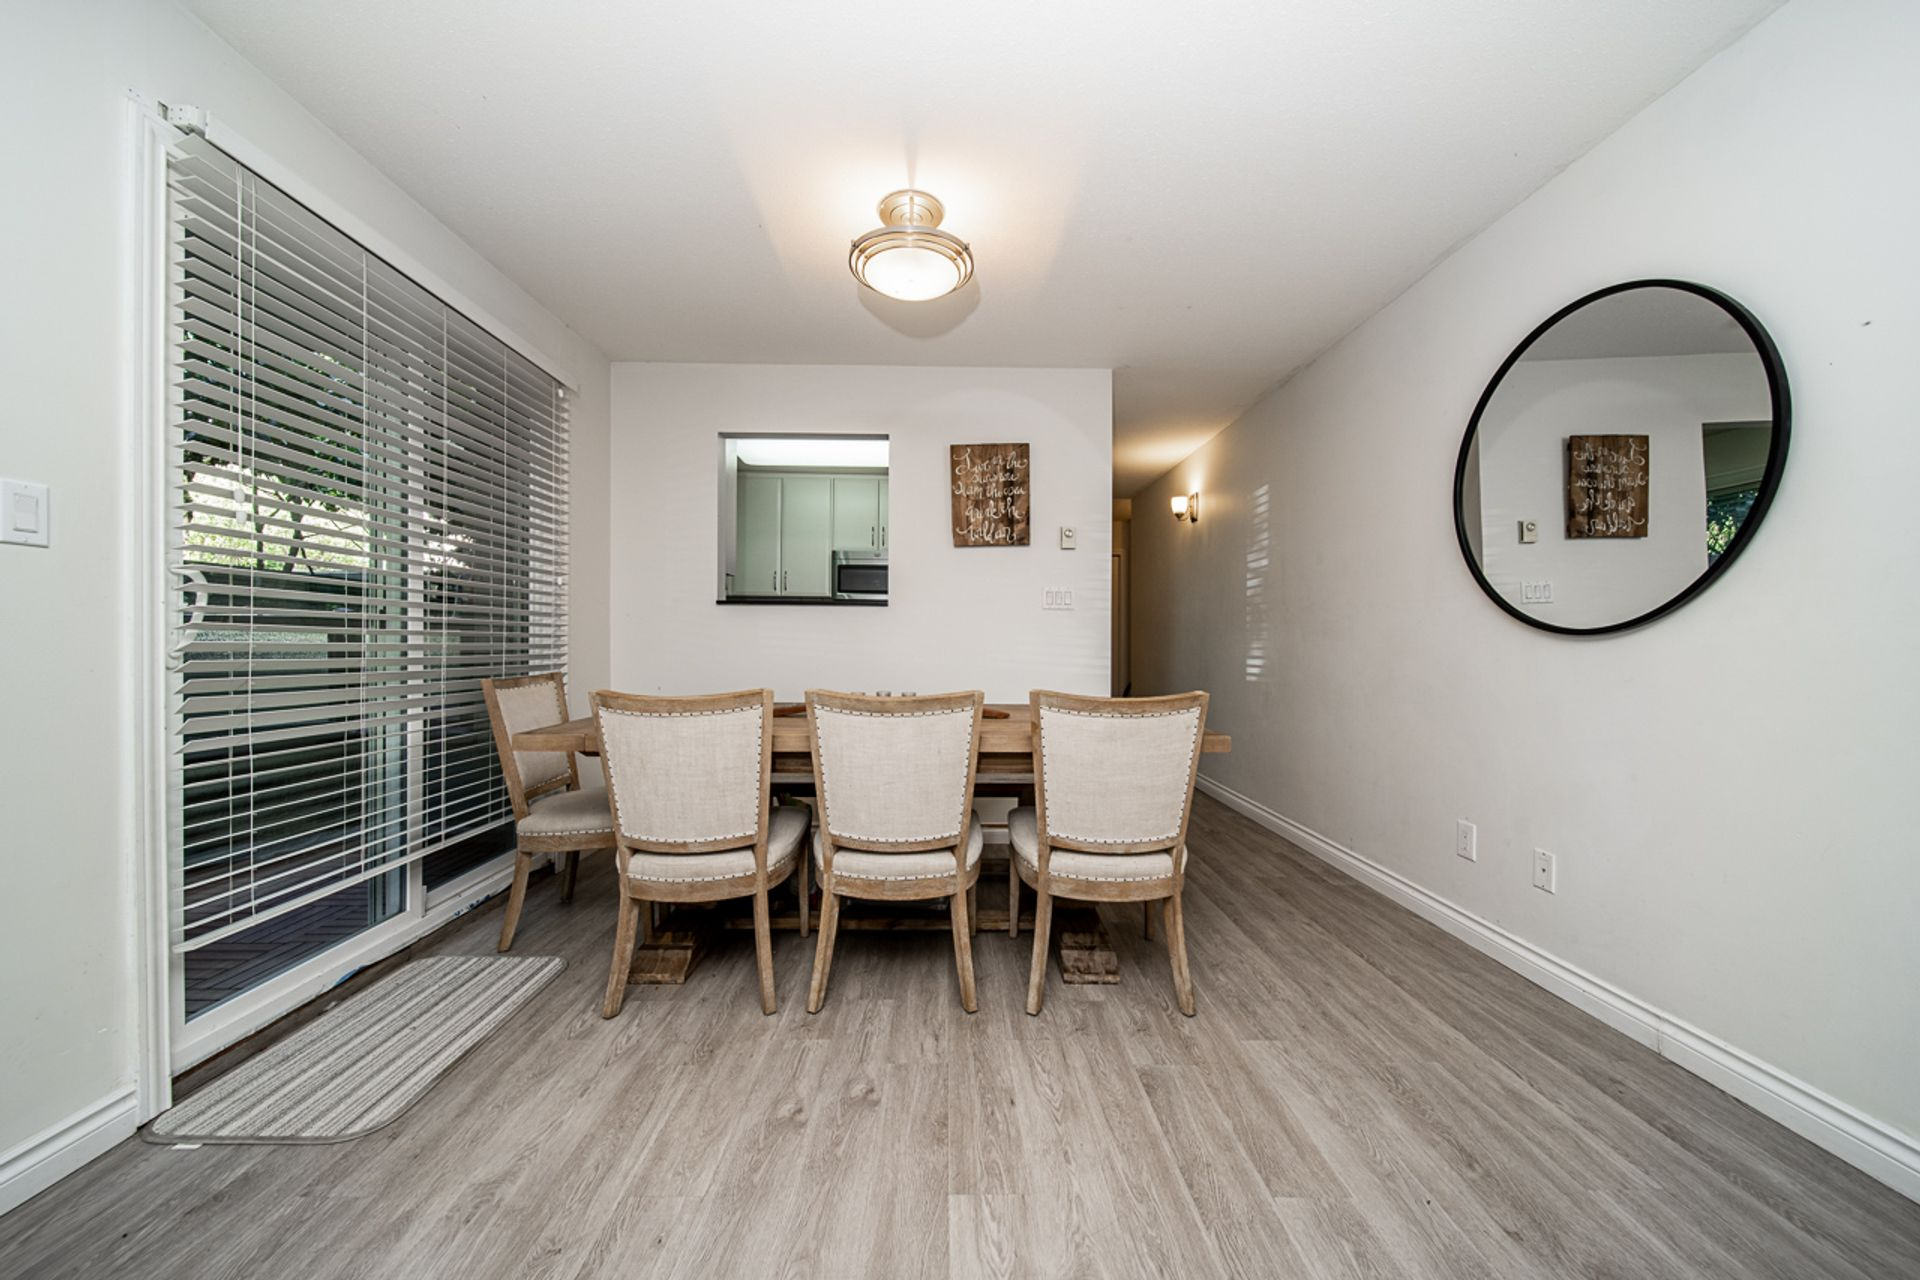 unit-101-175-west-4th-street-north-vancouver-13 at 101 - 175 W 4th Street, Lower Lonsdale, North Vancouver